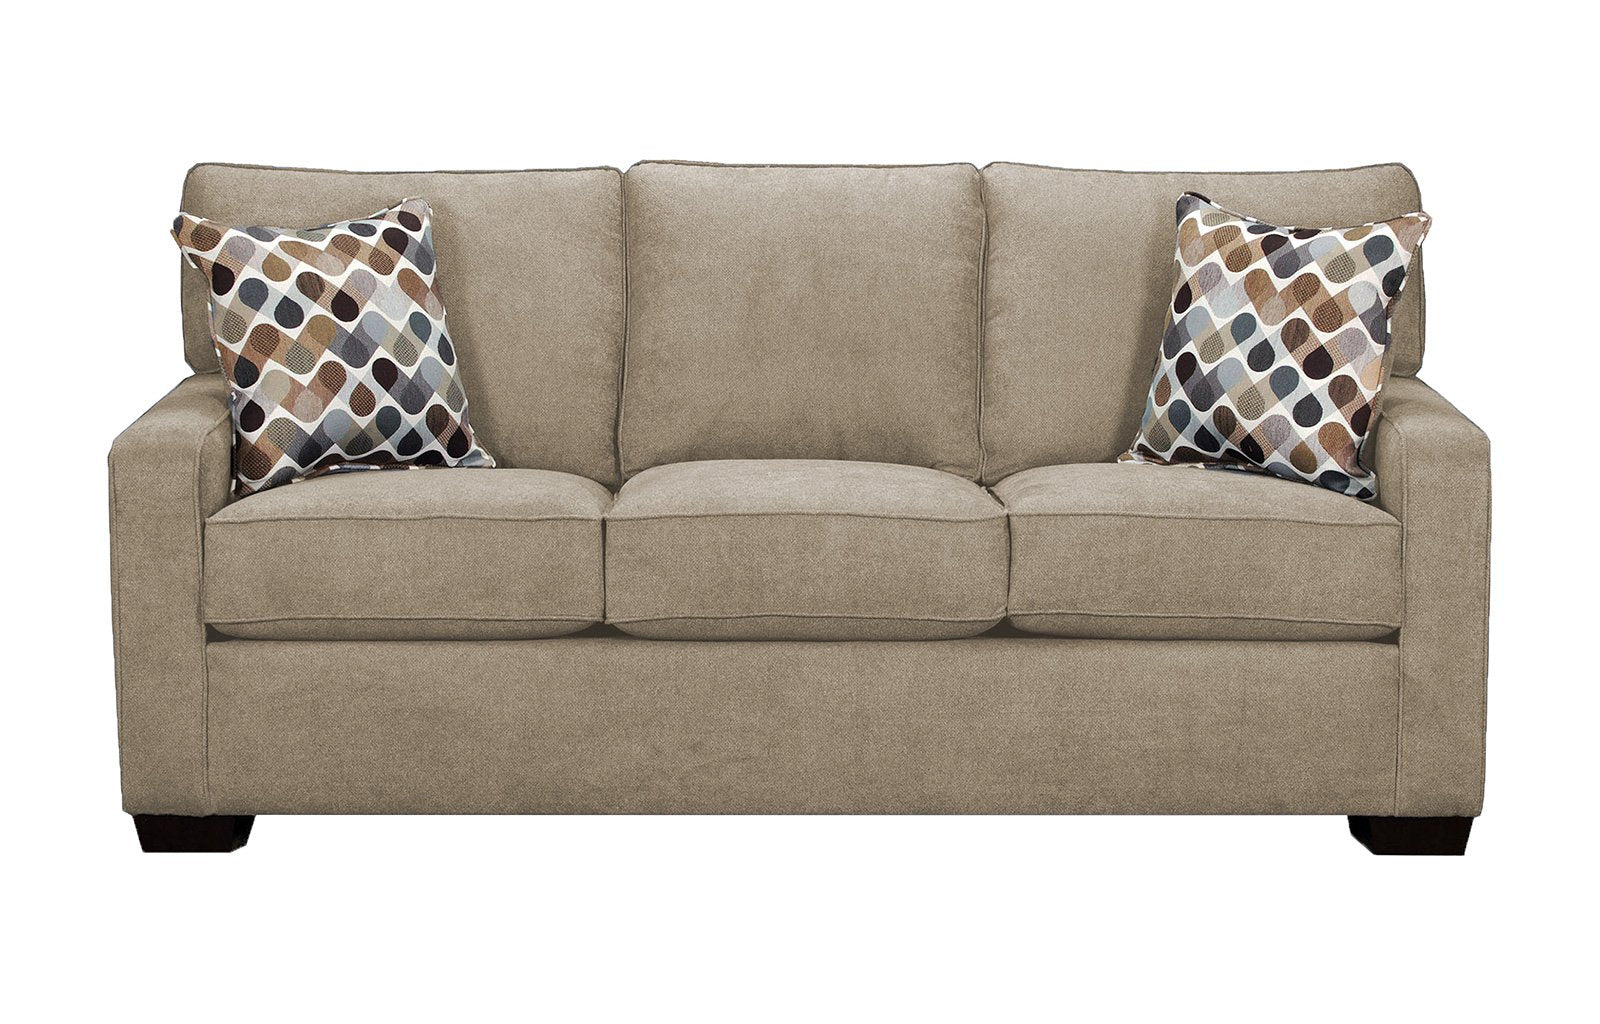 - Brittany Sleeper Sofa - Brittany Collection FFO Home